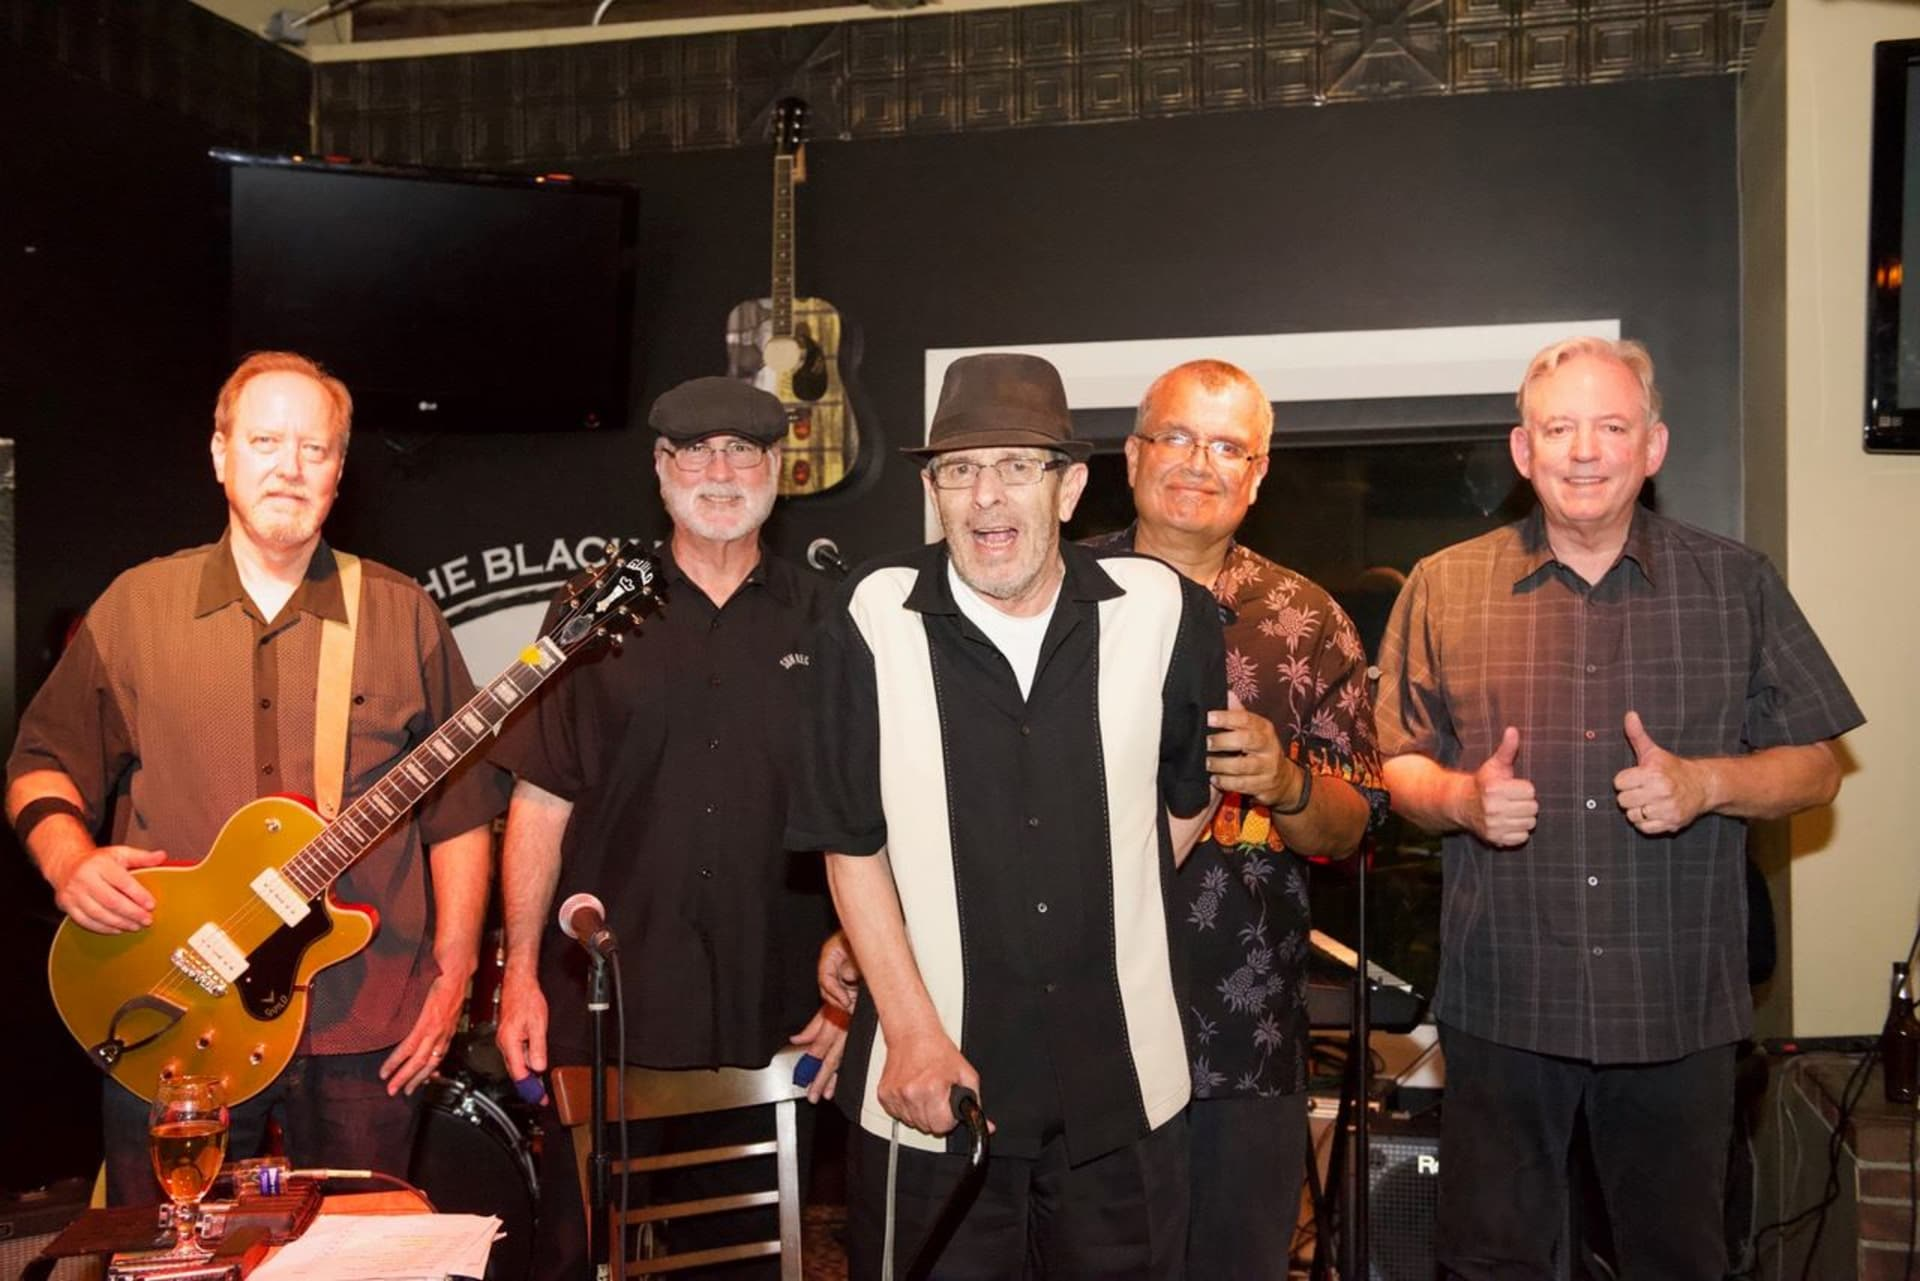 NOVEMBER 9 / PAPA J AND CROSSCUT DELUXE BLUES BAND @ 8PM